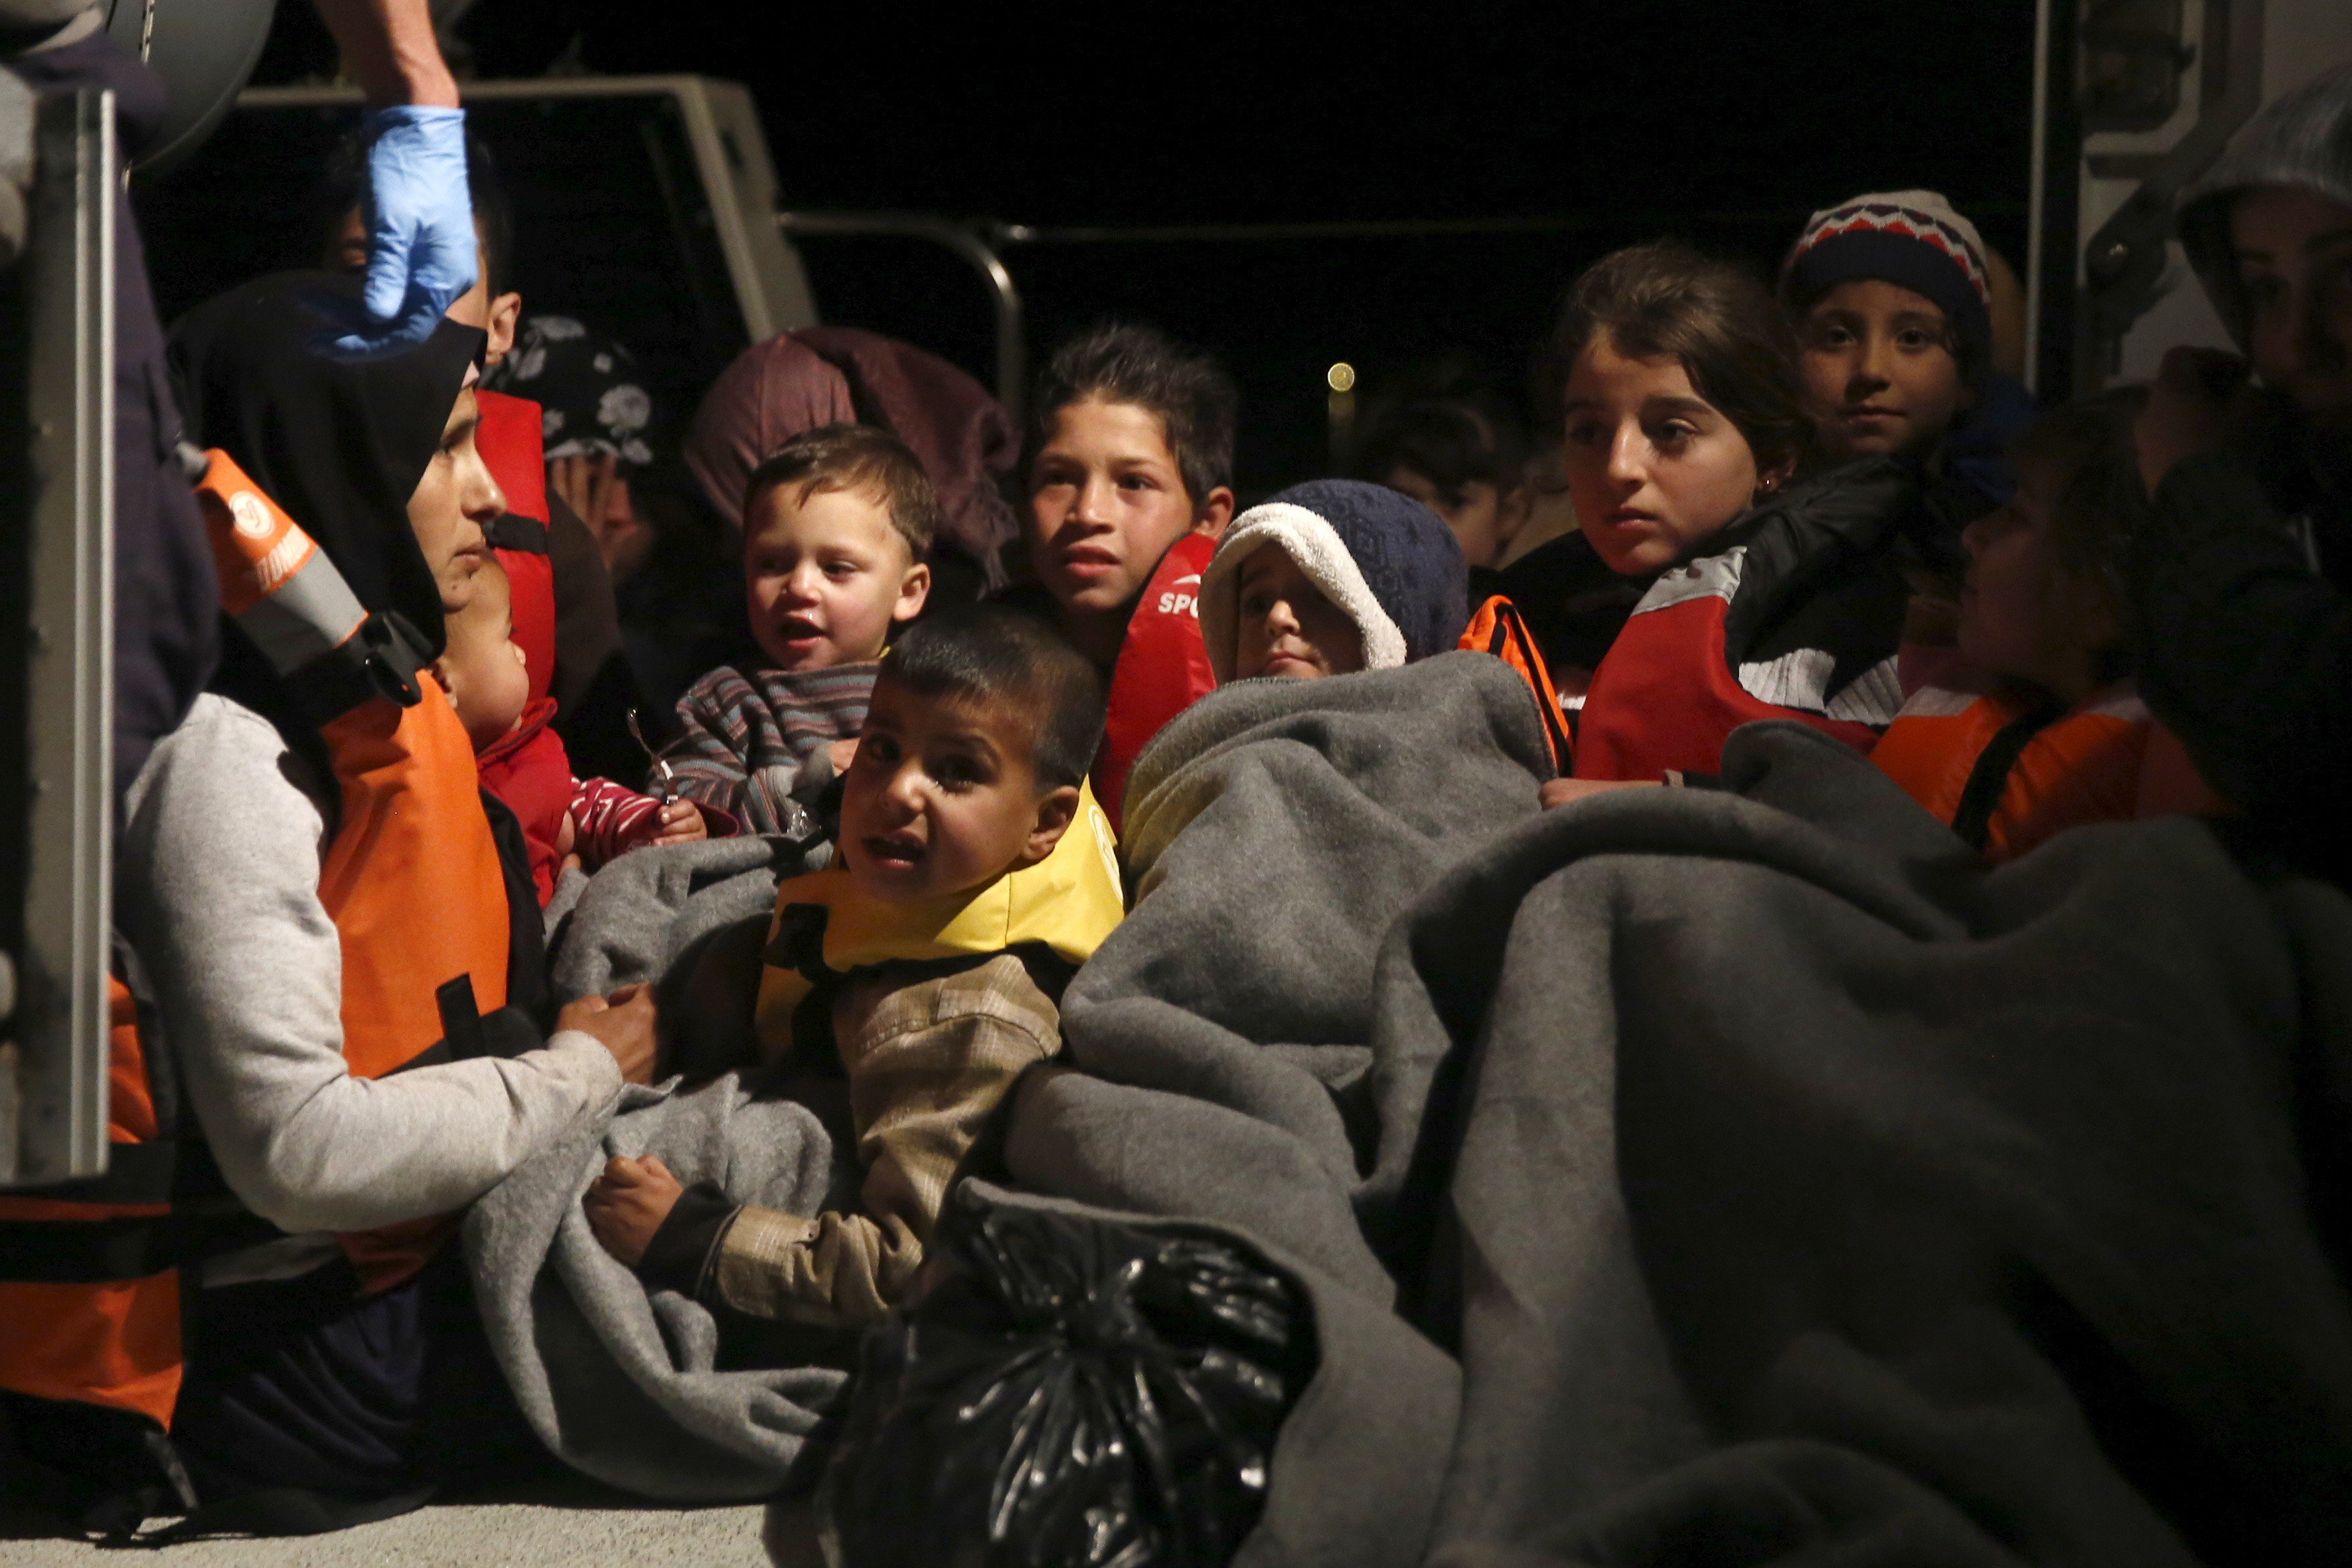 Refugee children are seen onboard a Greek Coast Guard vessel, carrying other refugees and migrants, as it arrives at the port of Mytilene on the Greek island of Lesbos, following a rescue operation at open sea, April 5, 2016. REUTERS/Giorgos Moutafis - RTSDMDU